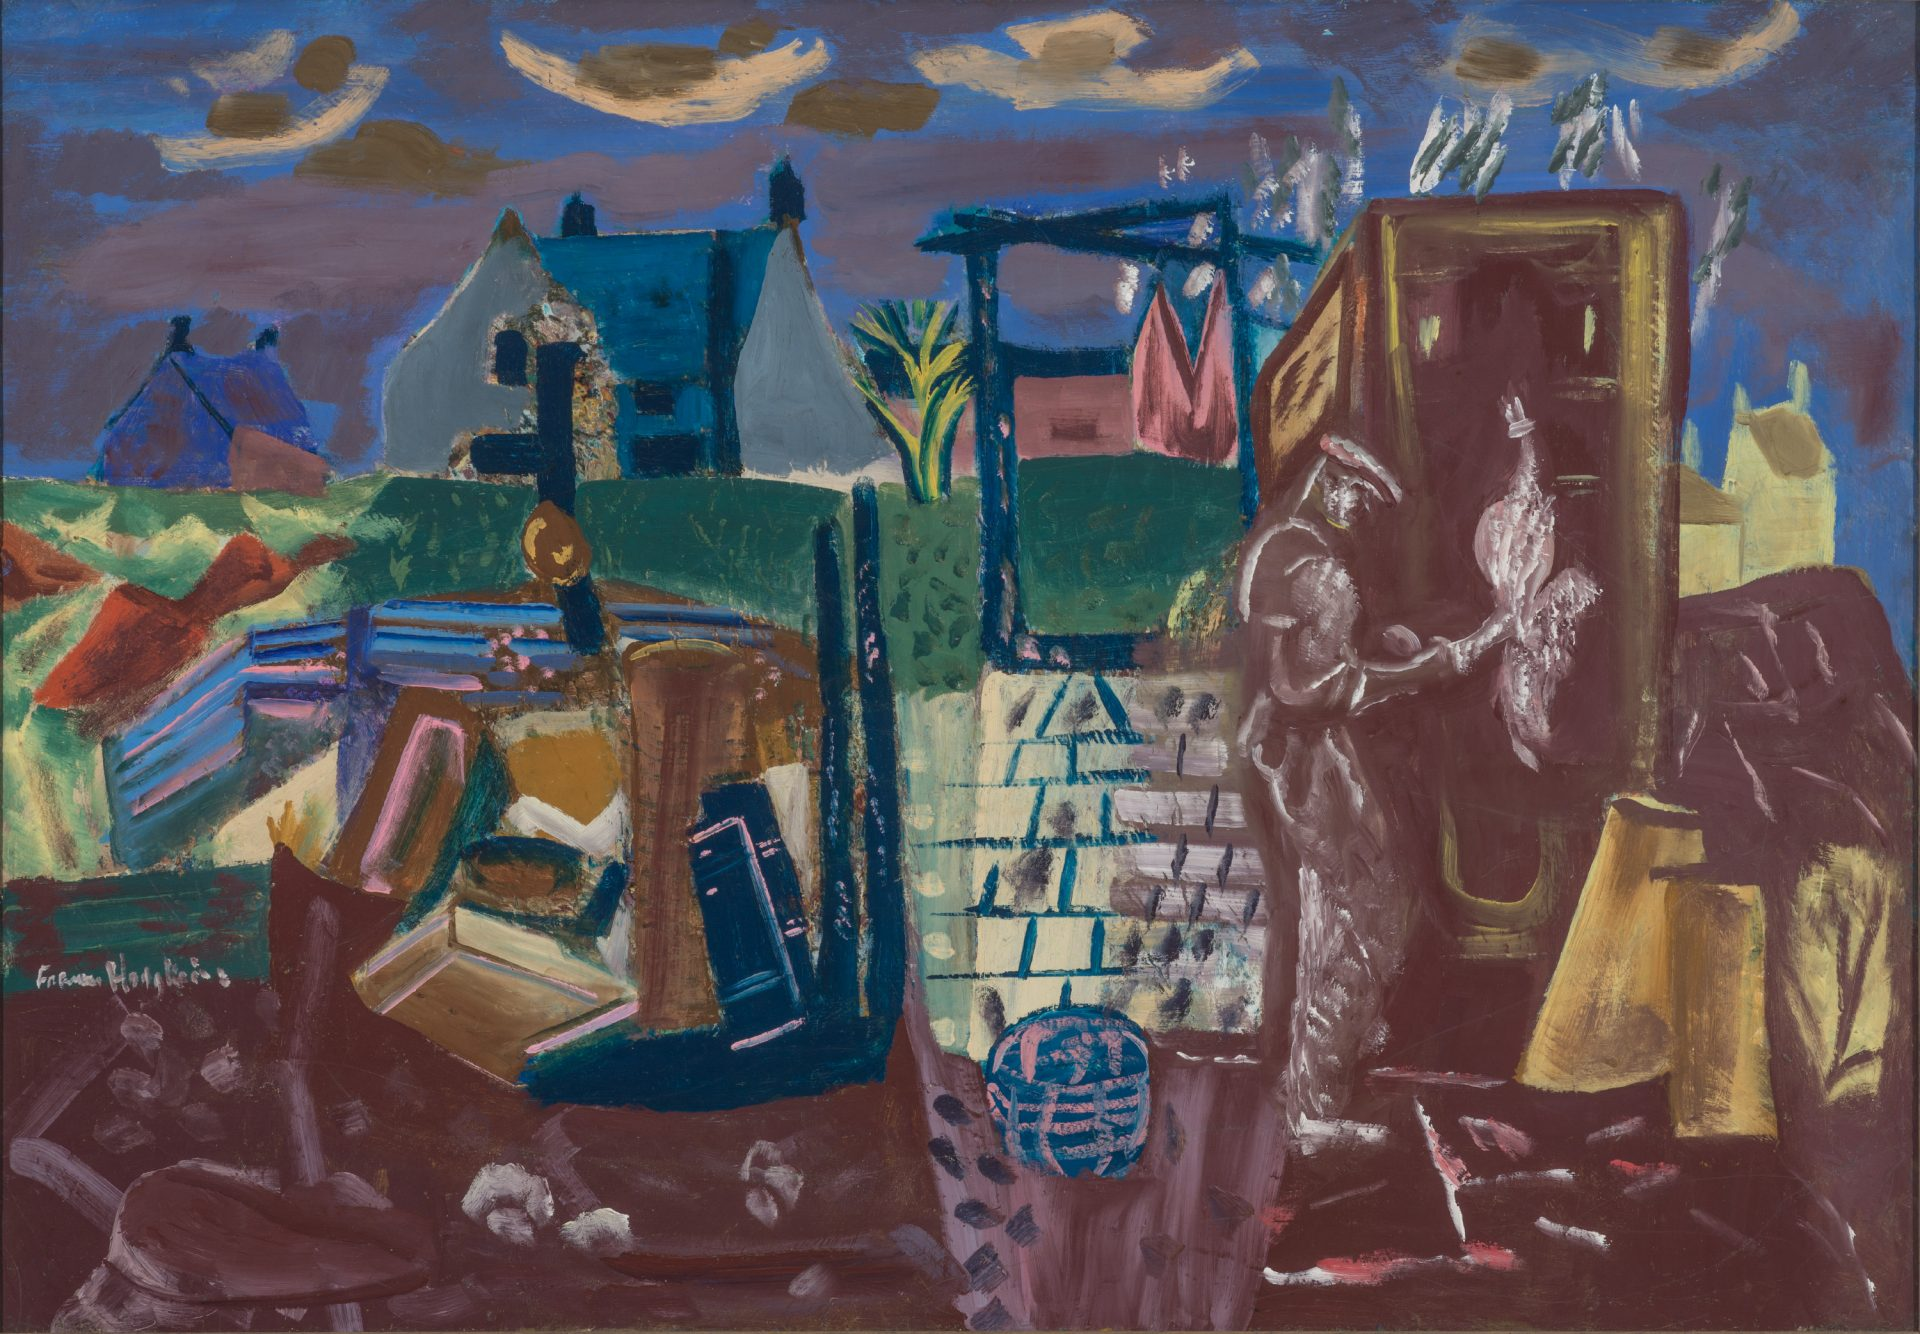 A grand tour<h3>Considering <em>Frances Hodgkins: European Journeys</em>